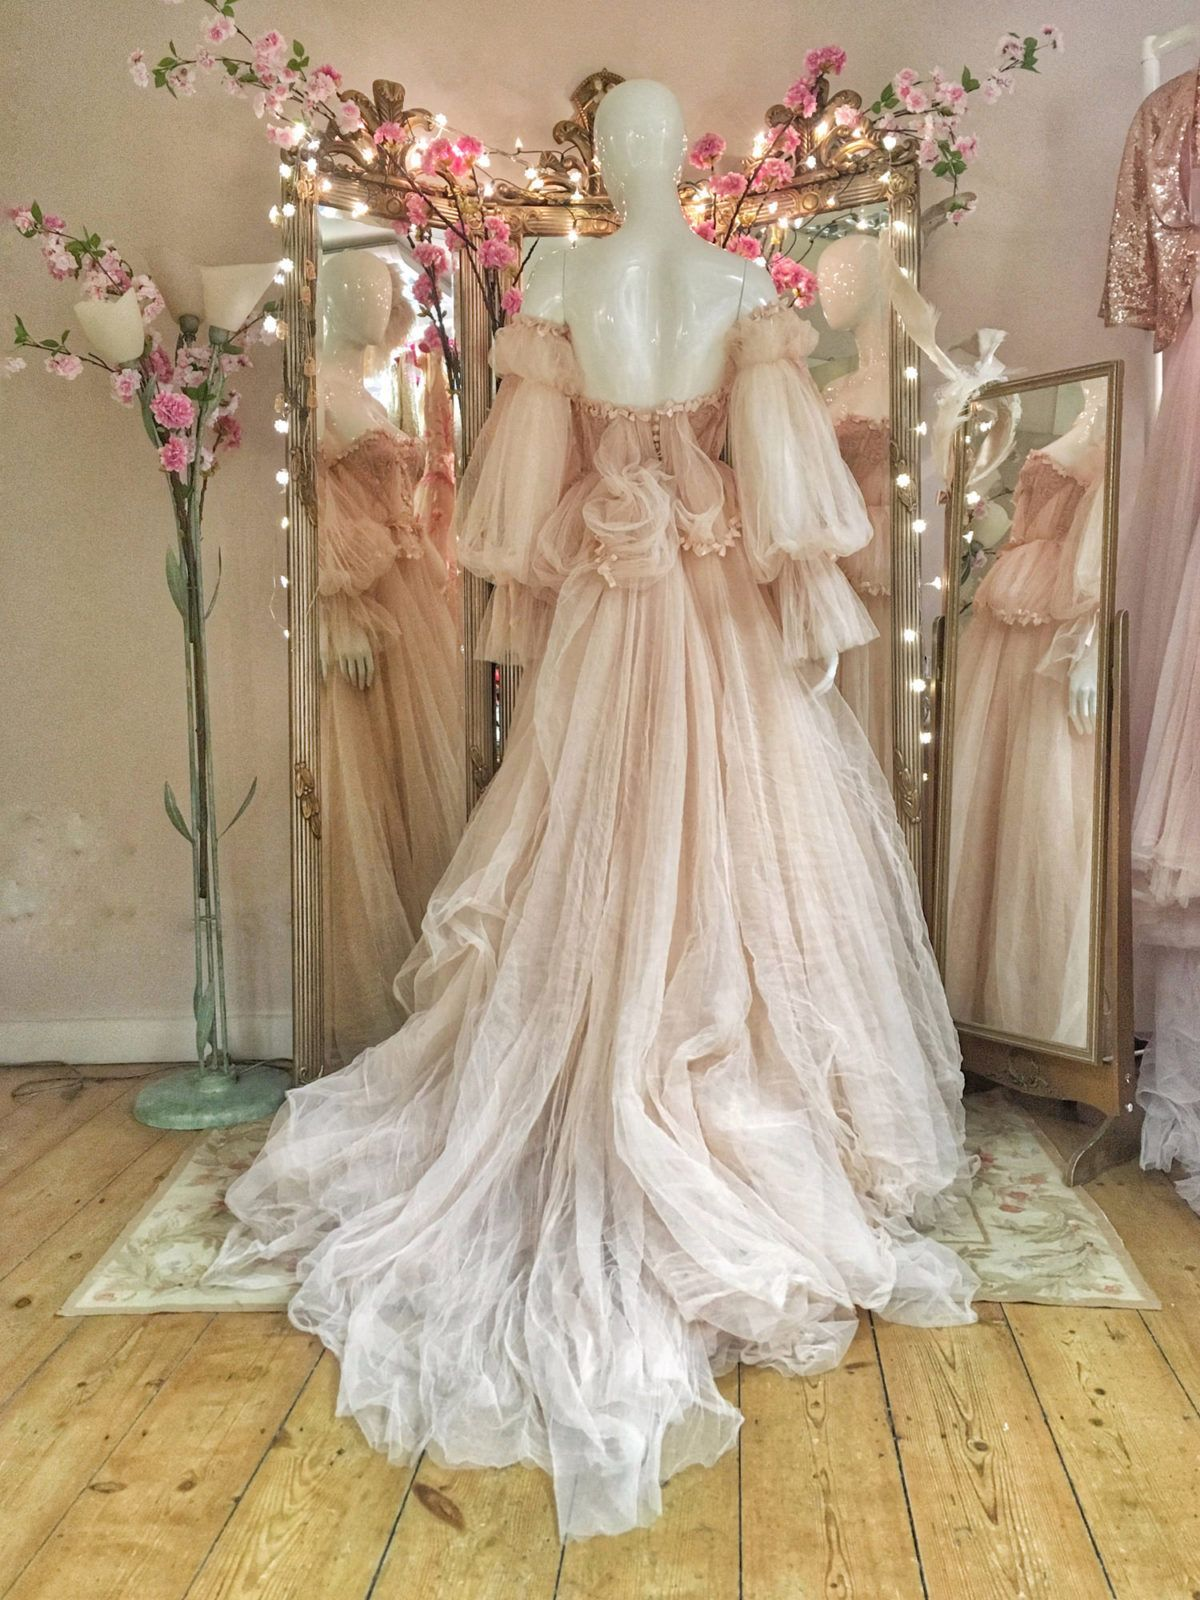 Blush tulle and lace romantic fairytale wedding dress by Joanne Fleming Design …